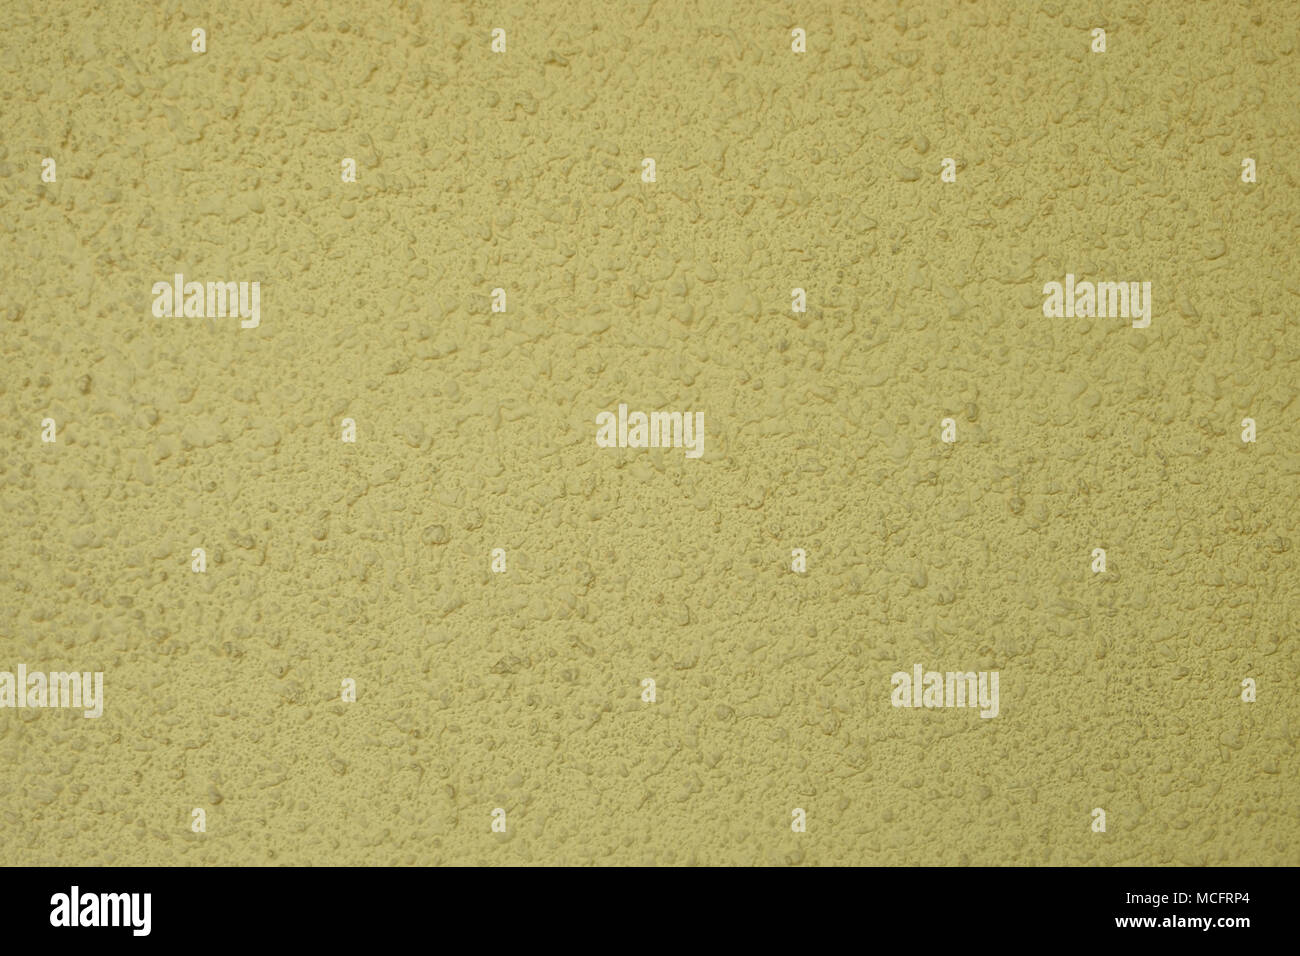 Yellow old cement wall concrete backgrounds textured Stock Photo ...